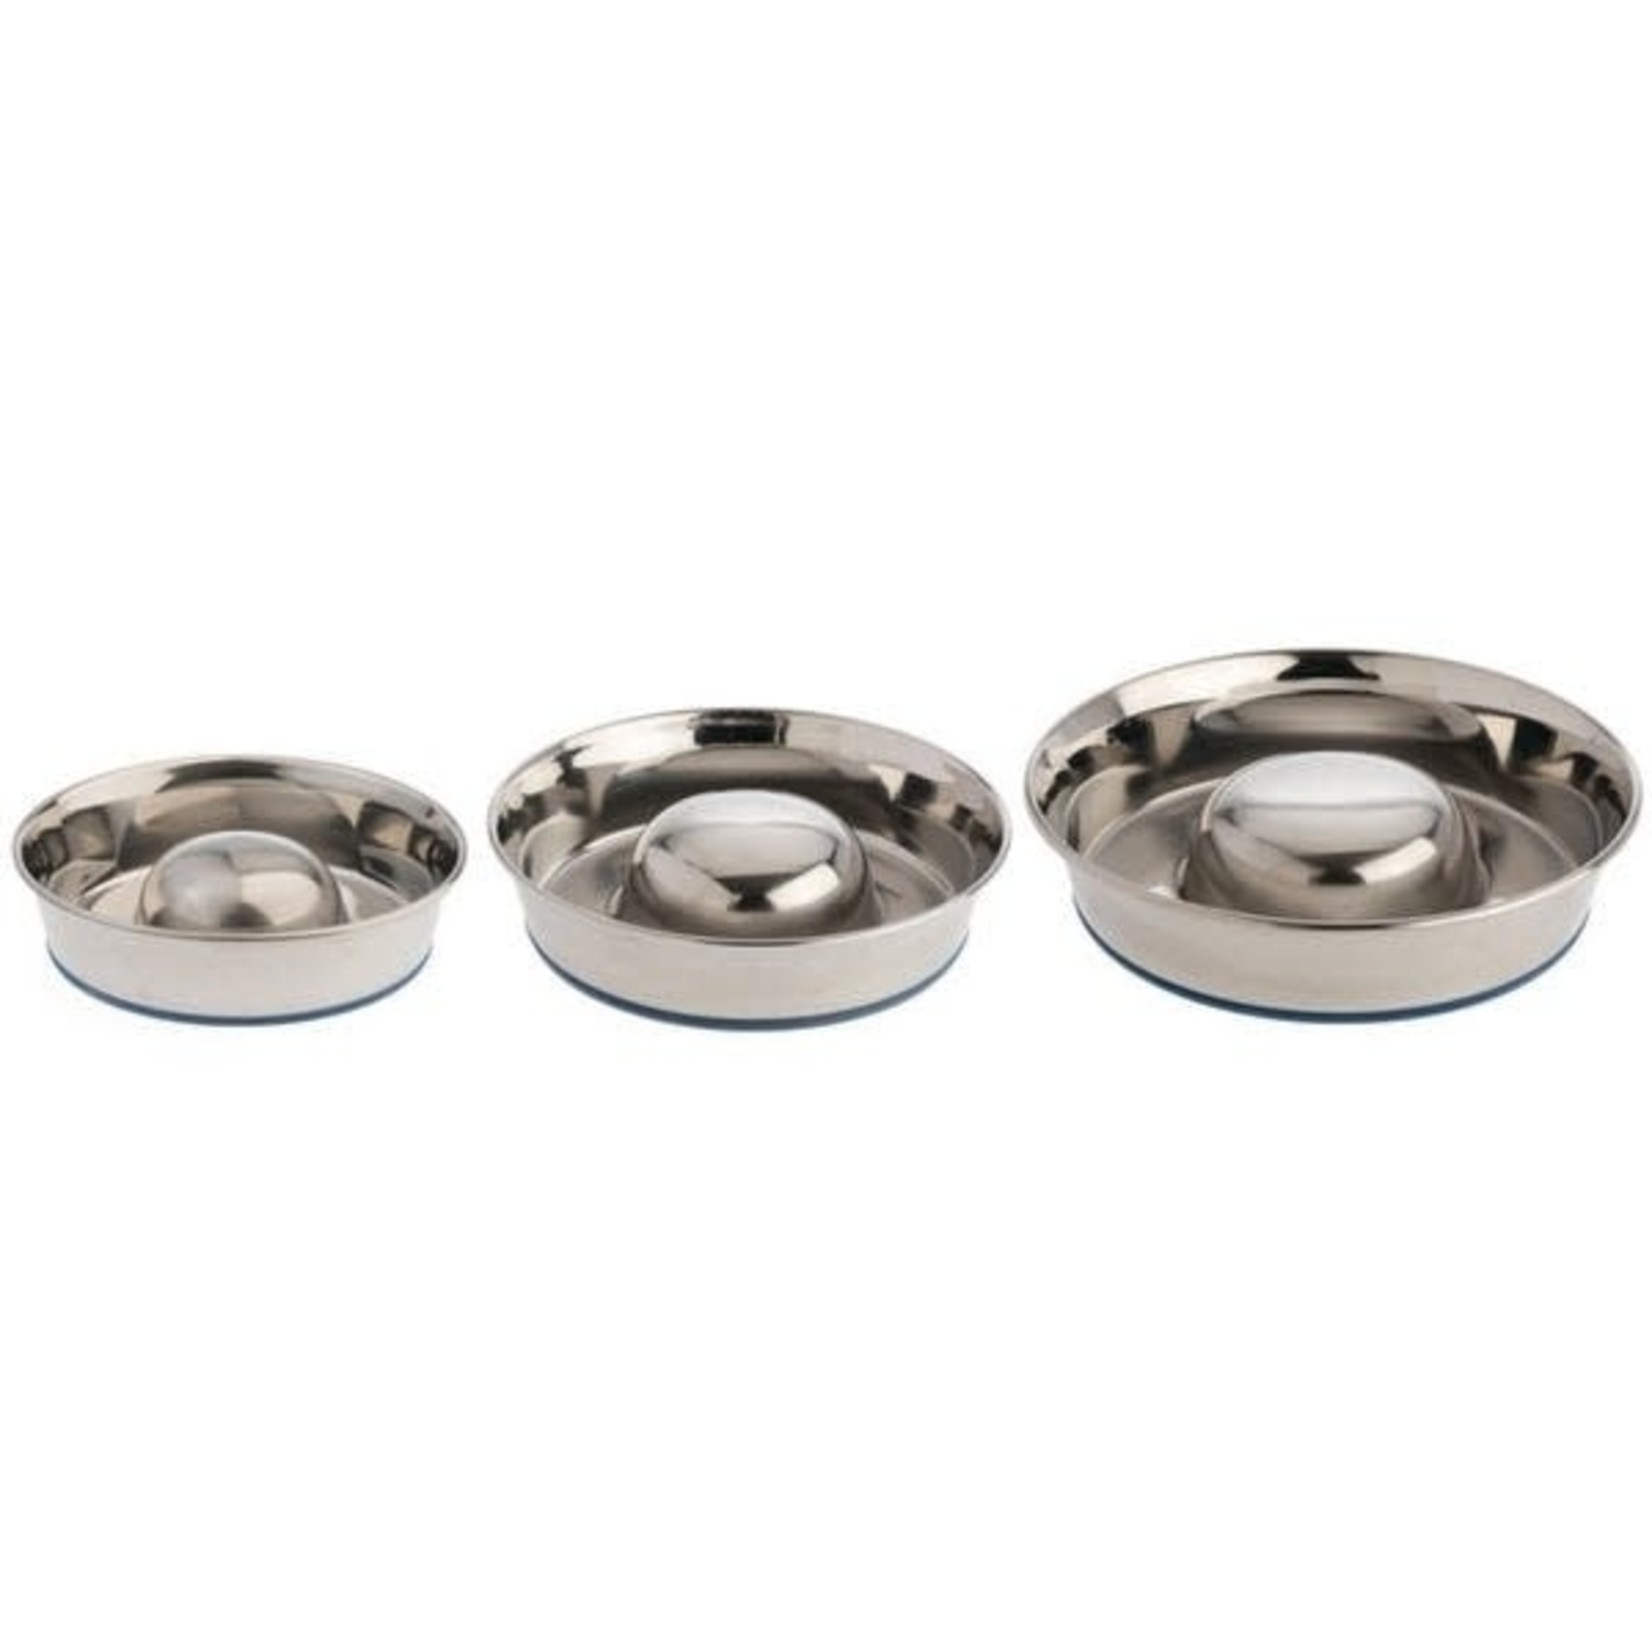 Our Pets Company Durapet Stainless Steel Bowl Slow Feed Small